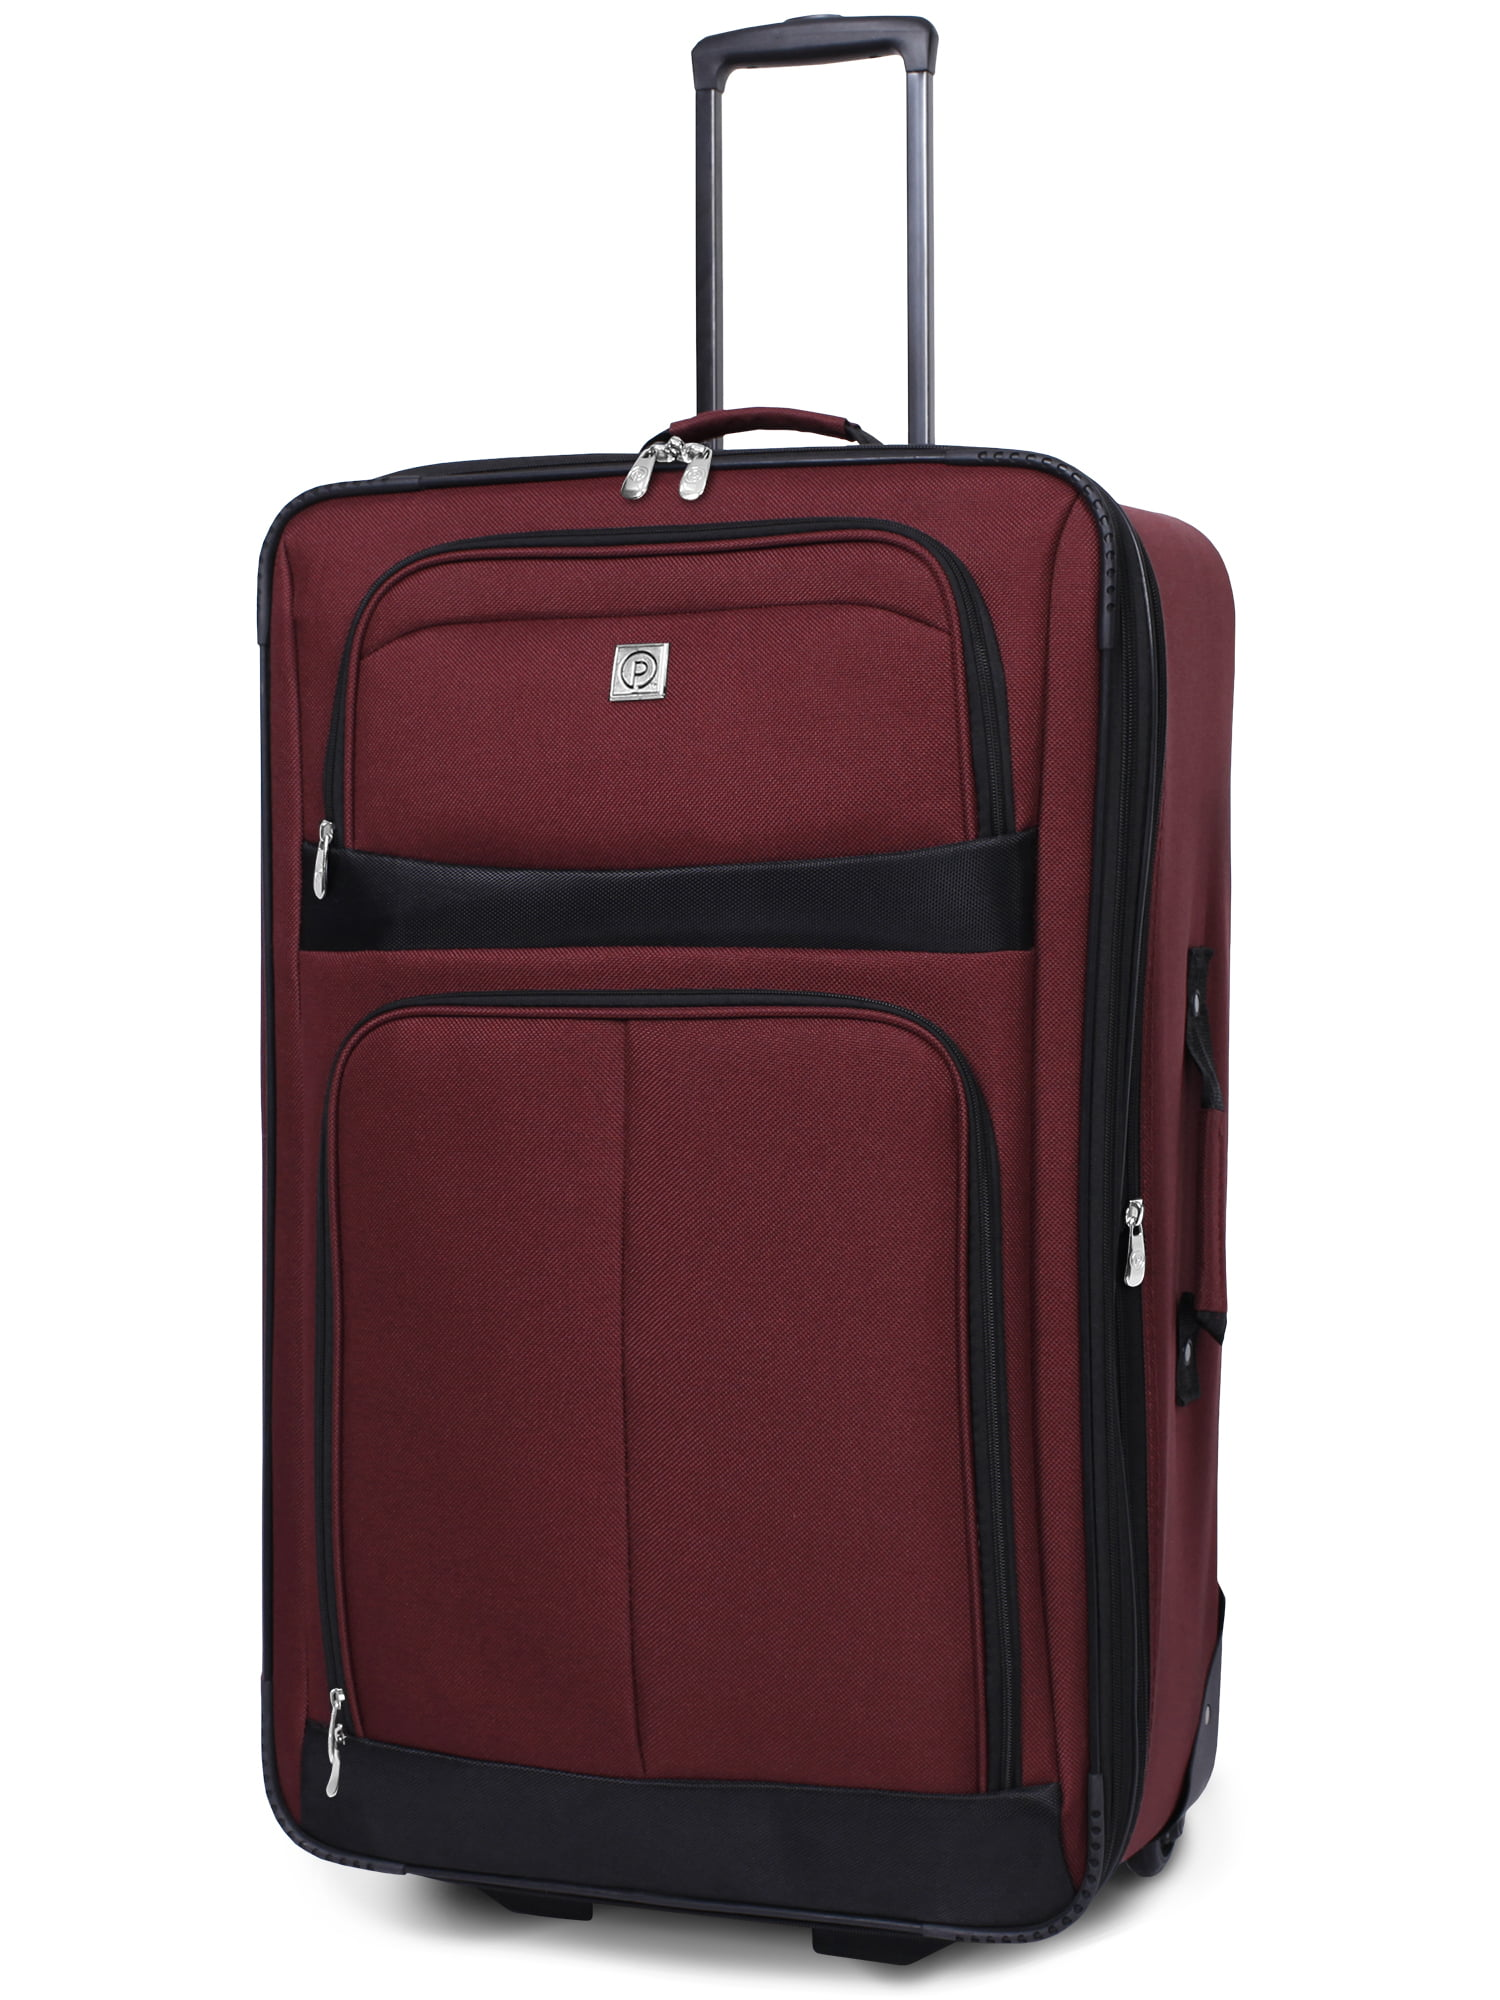 Protege 28 Checked Regency 2 Wheel Upright Luggage Exclusive